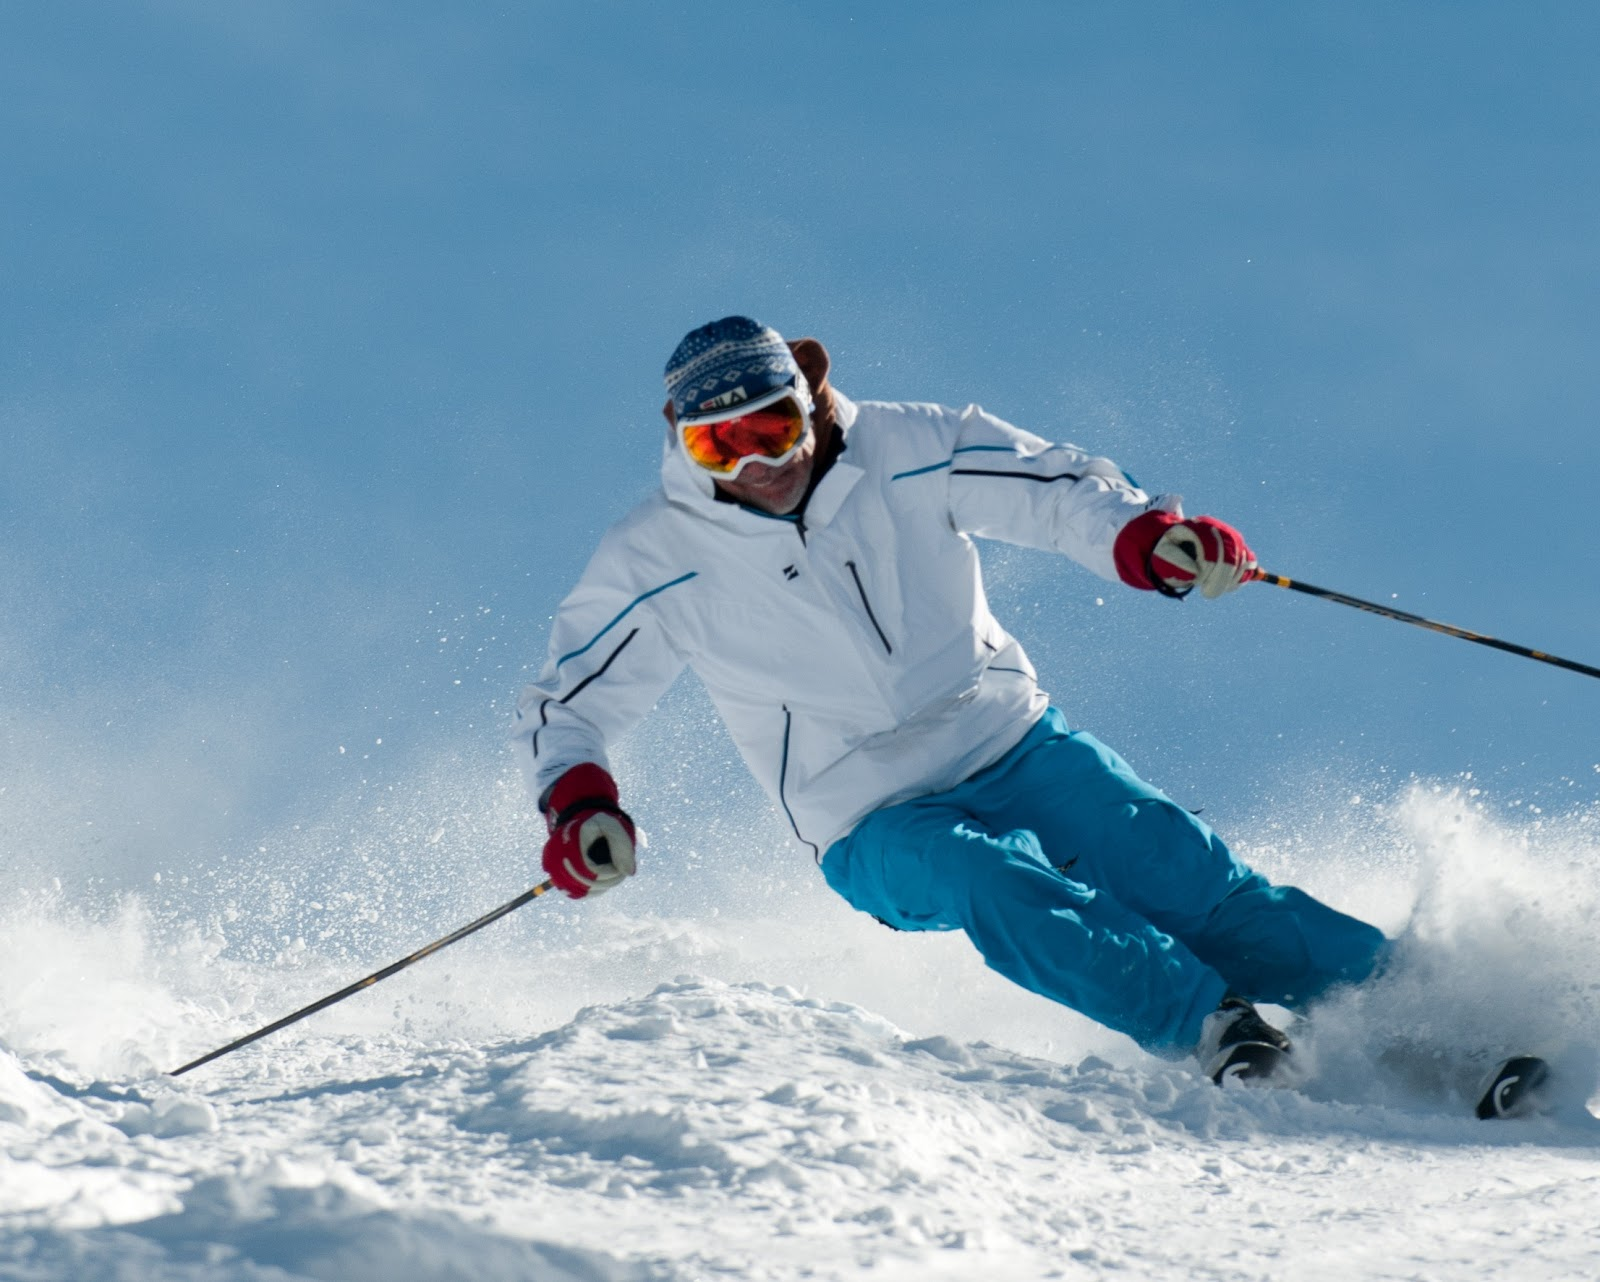 Tips for first-time skiers (and instructors of first-time skiers)